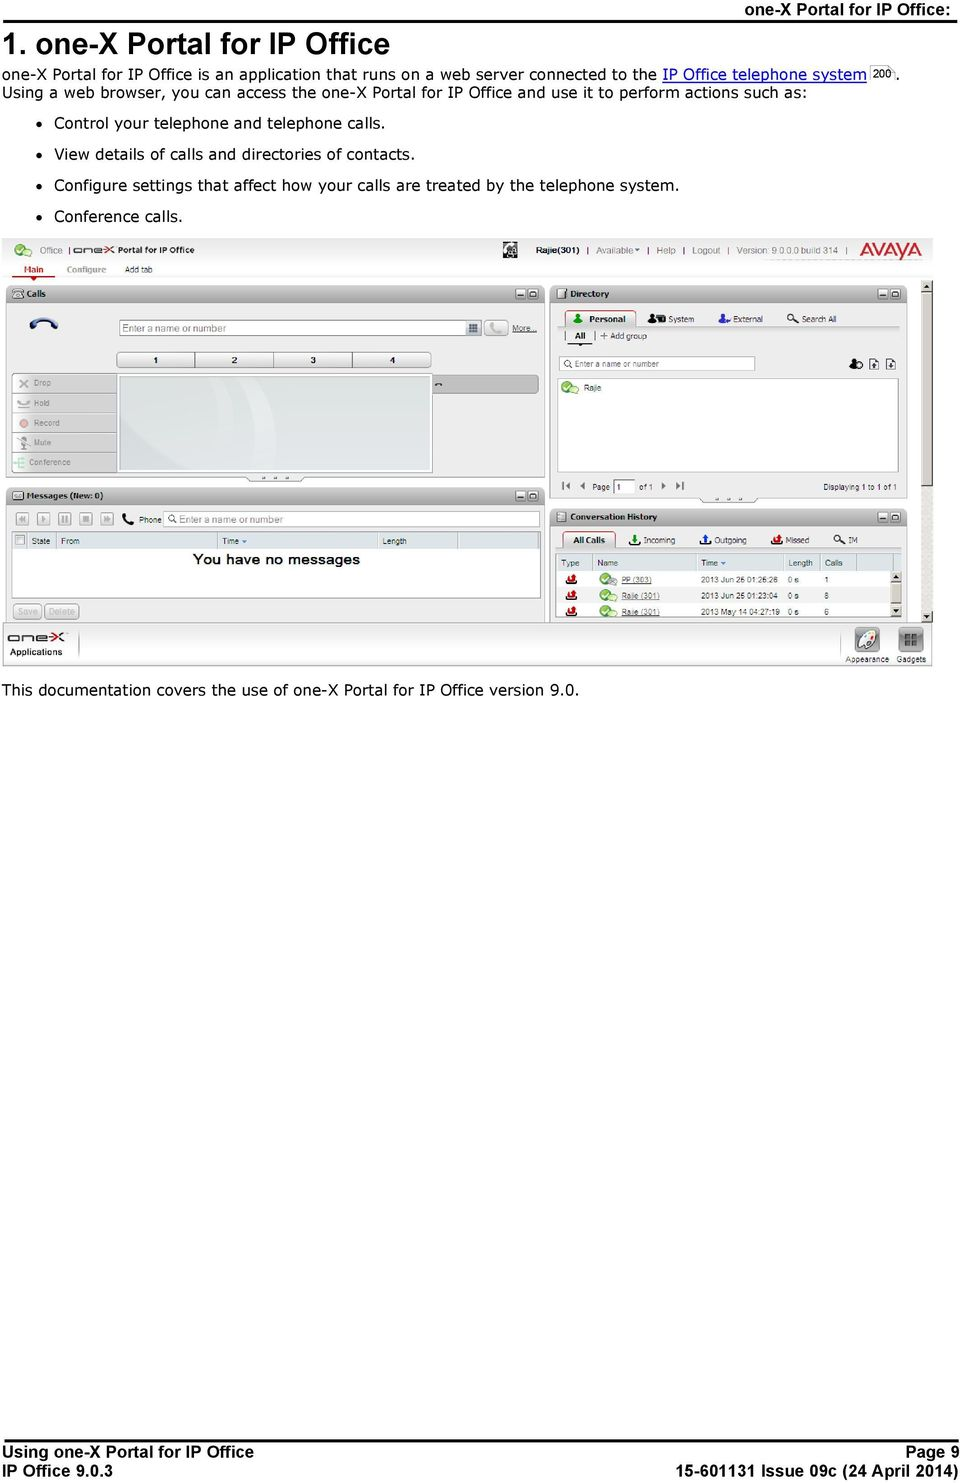 system Using a web browser, you can access the one-x Portal for IP Office and use it to perform actions such as: 200.